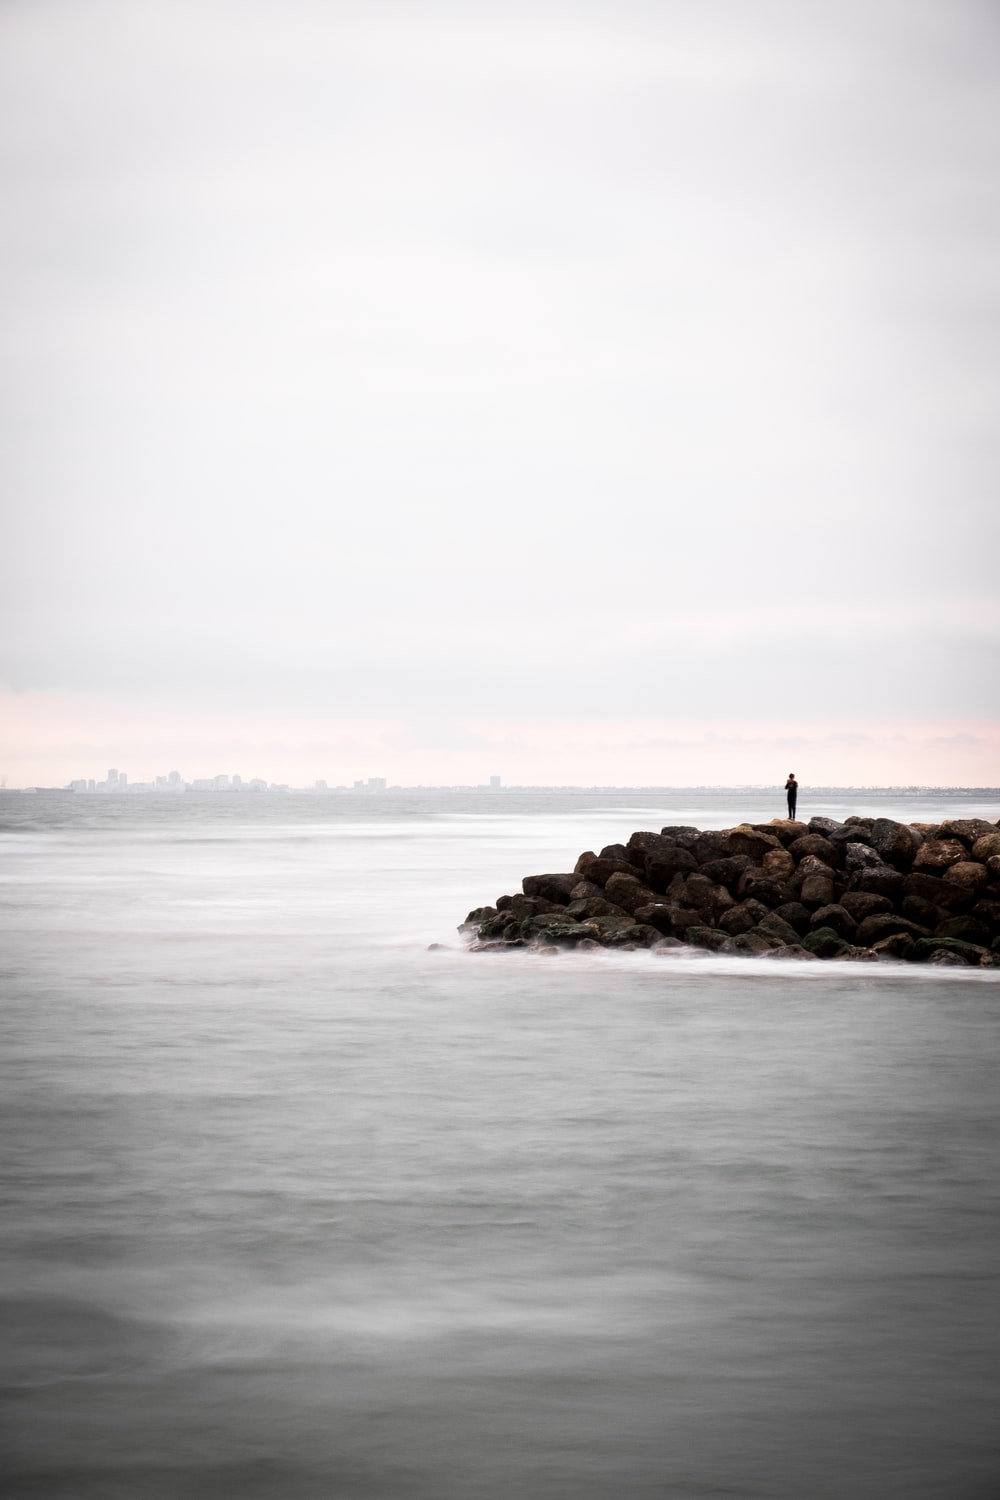 person standing on rocks surrounded by body of water